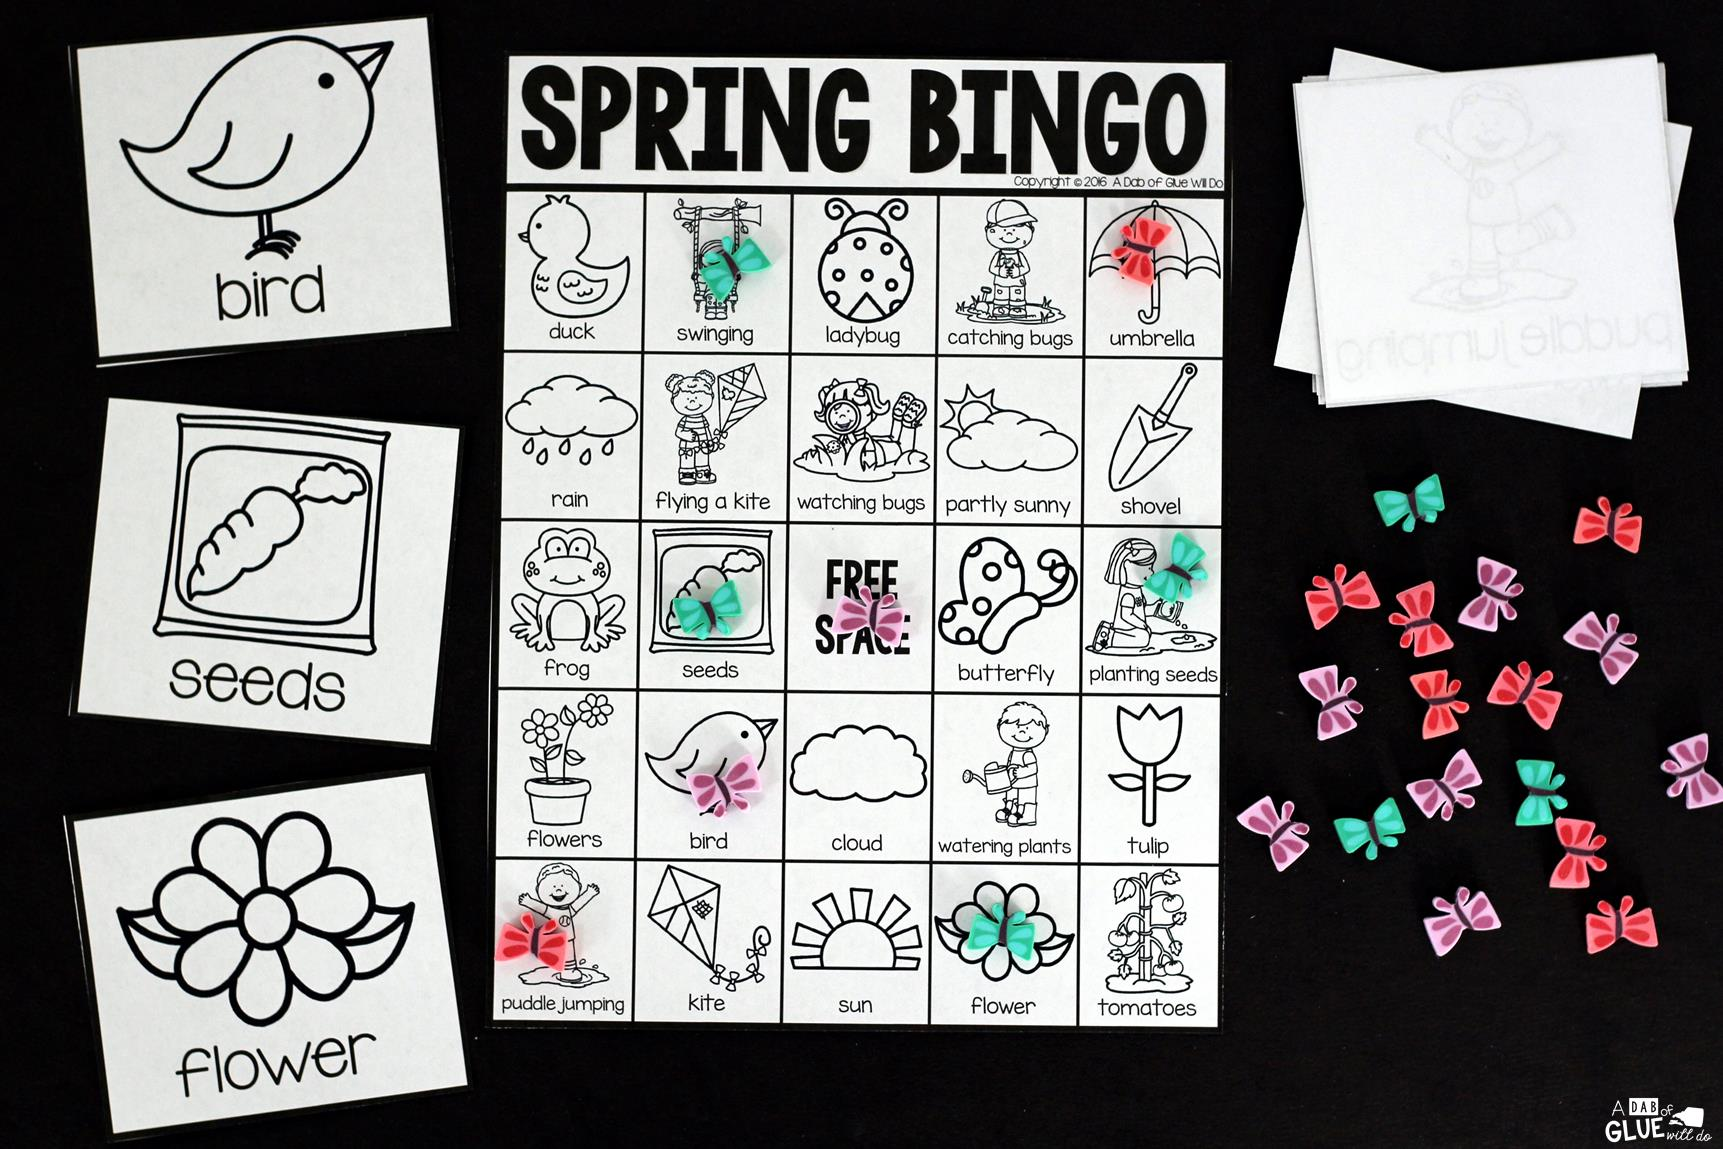 Play Bingo with your elementary age students for a fun spring themed game! Perfect for large groups in your classroom or small review groups. Add this to your spring lesson plans or spring class party with 30 unique spring Bingo boards! Teaching cards are also included in this fun game for young children! Black and white options available to save your color ink.